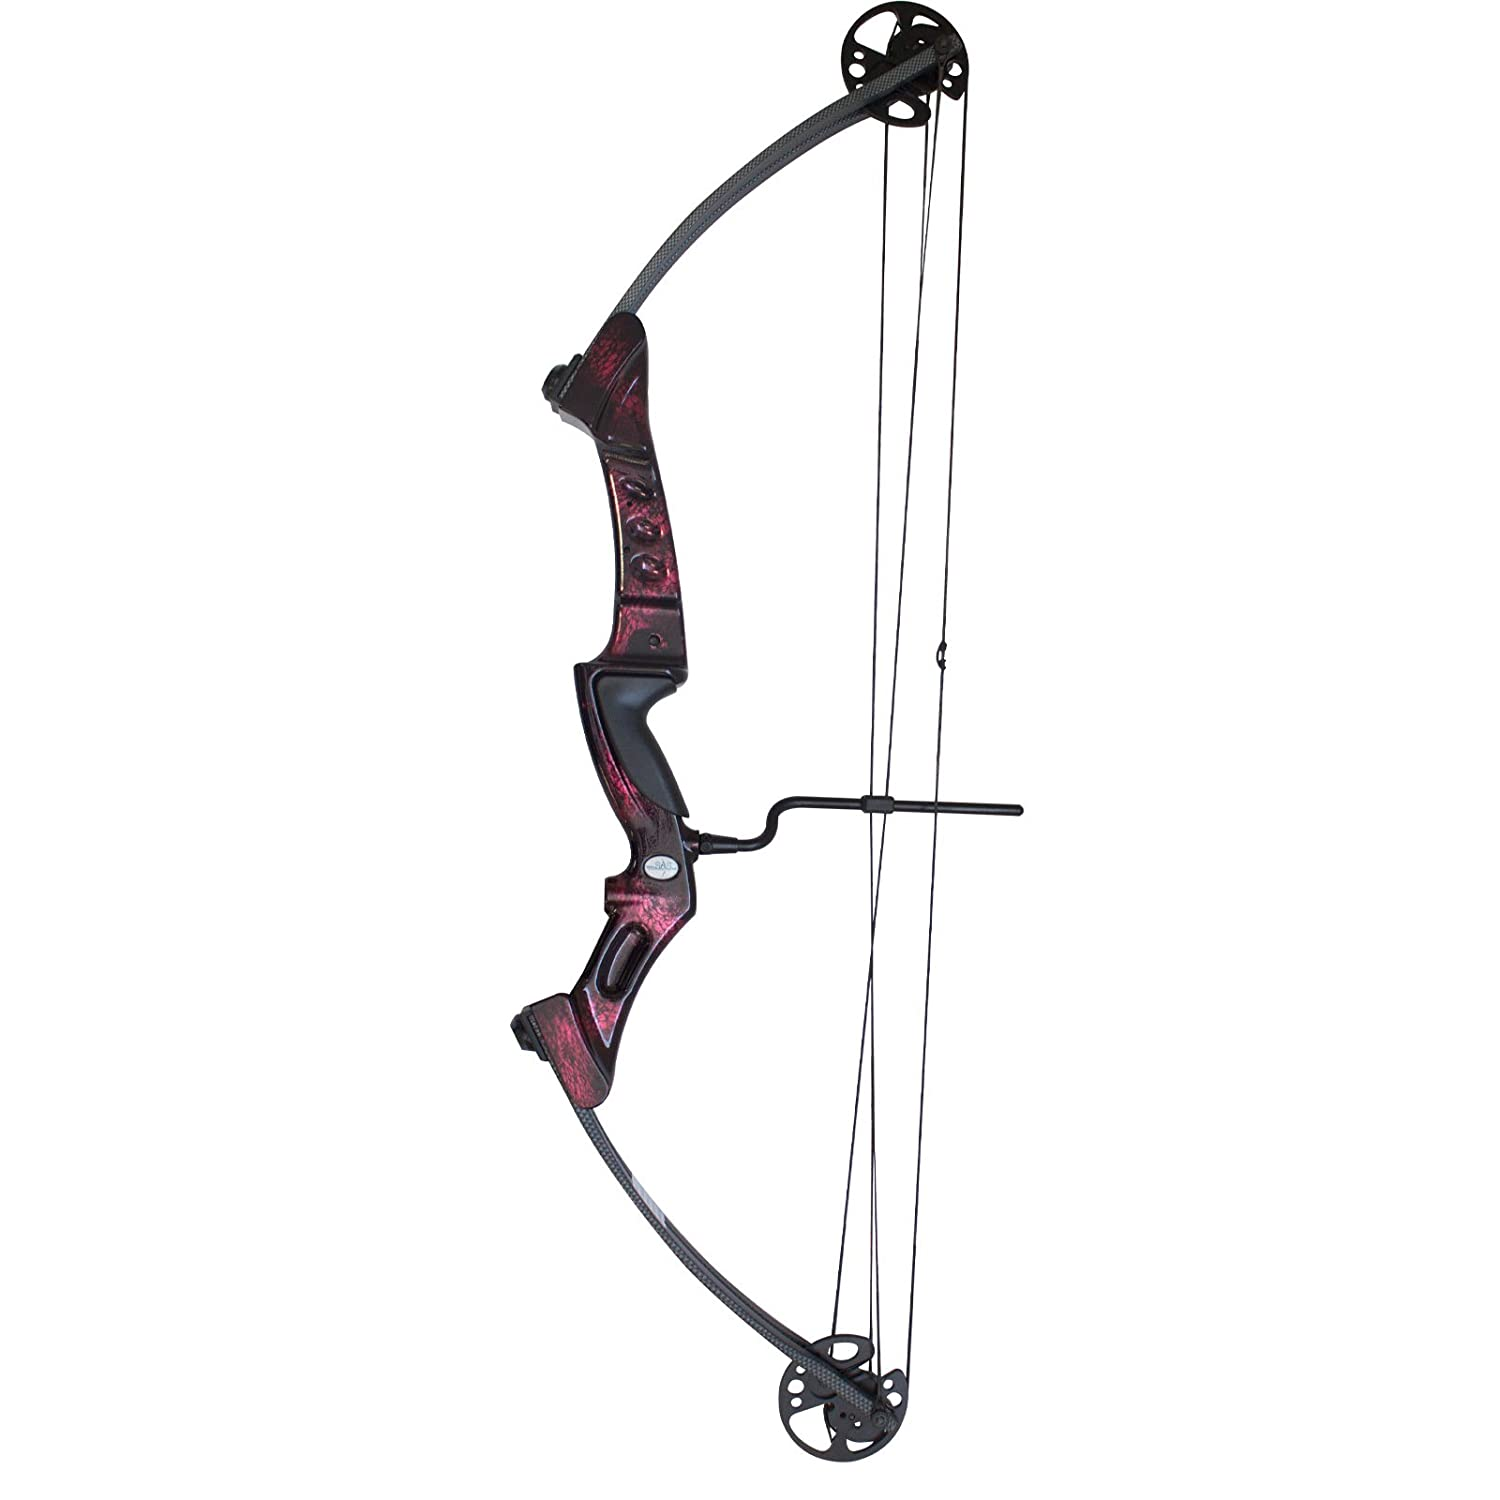 Southland Archery Supply SAS Primal 35-50 lbs Target Compound Bow 40 1 2 ATA with Red Riser and Carbon Limbs